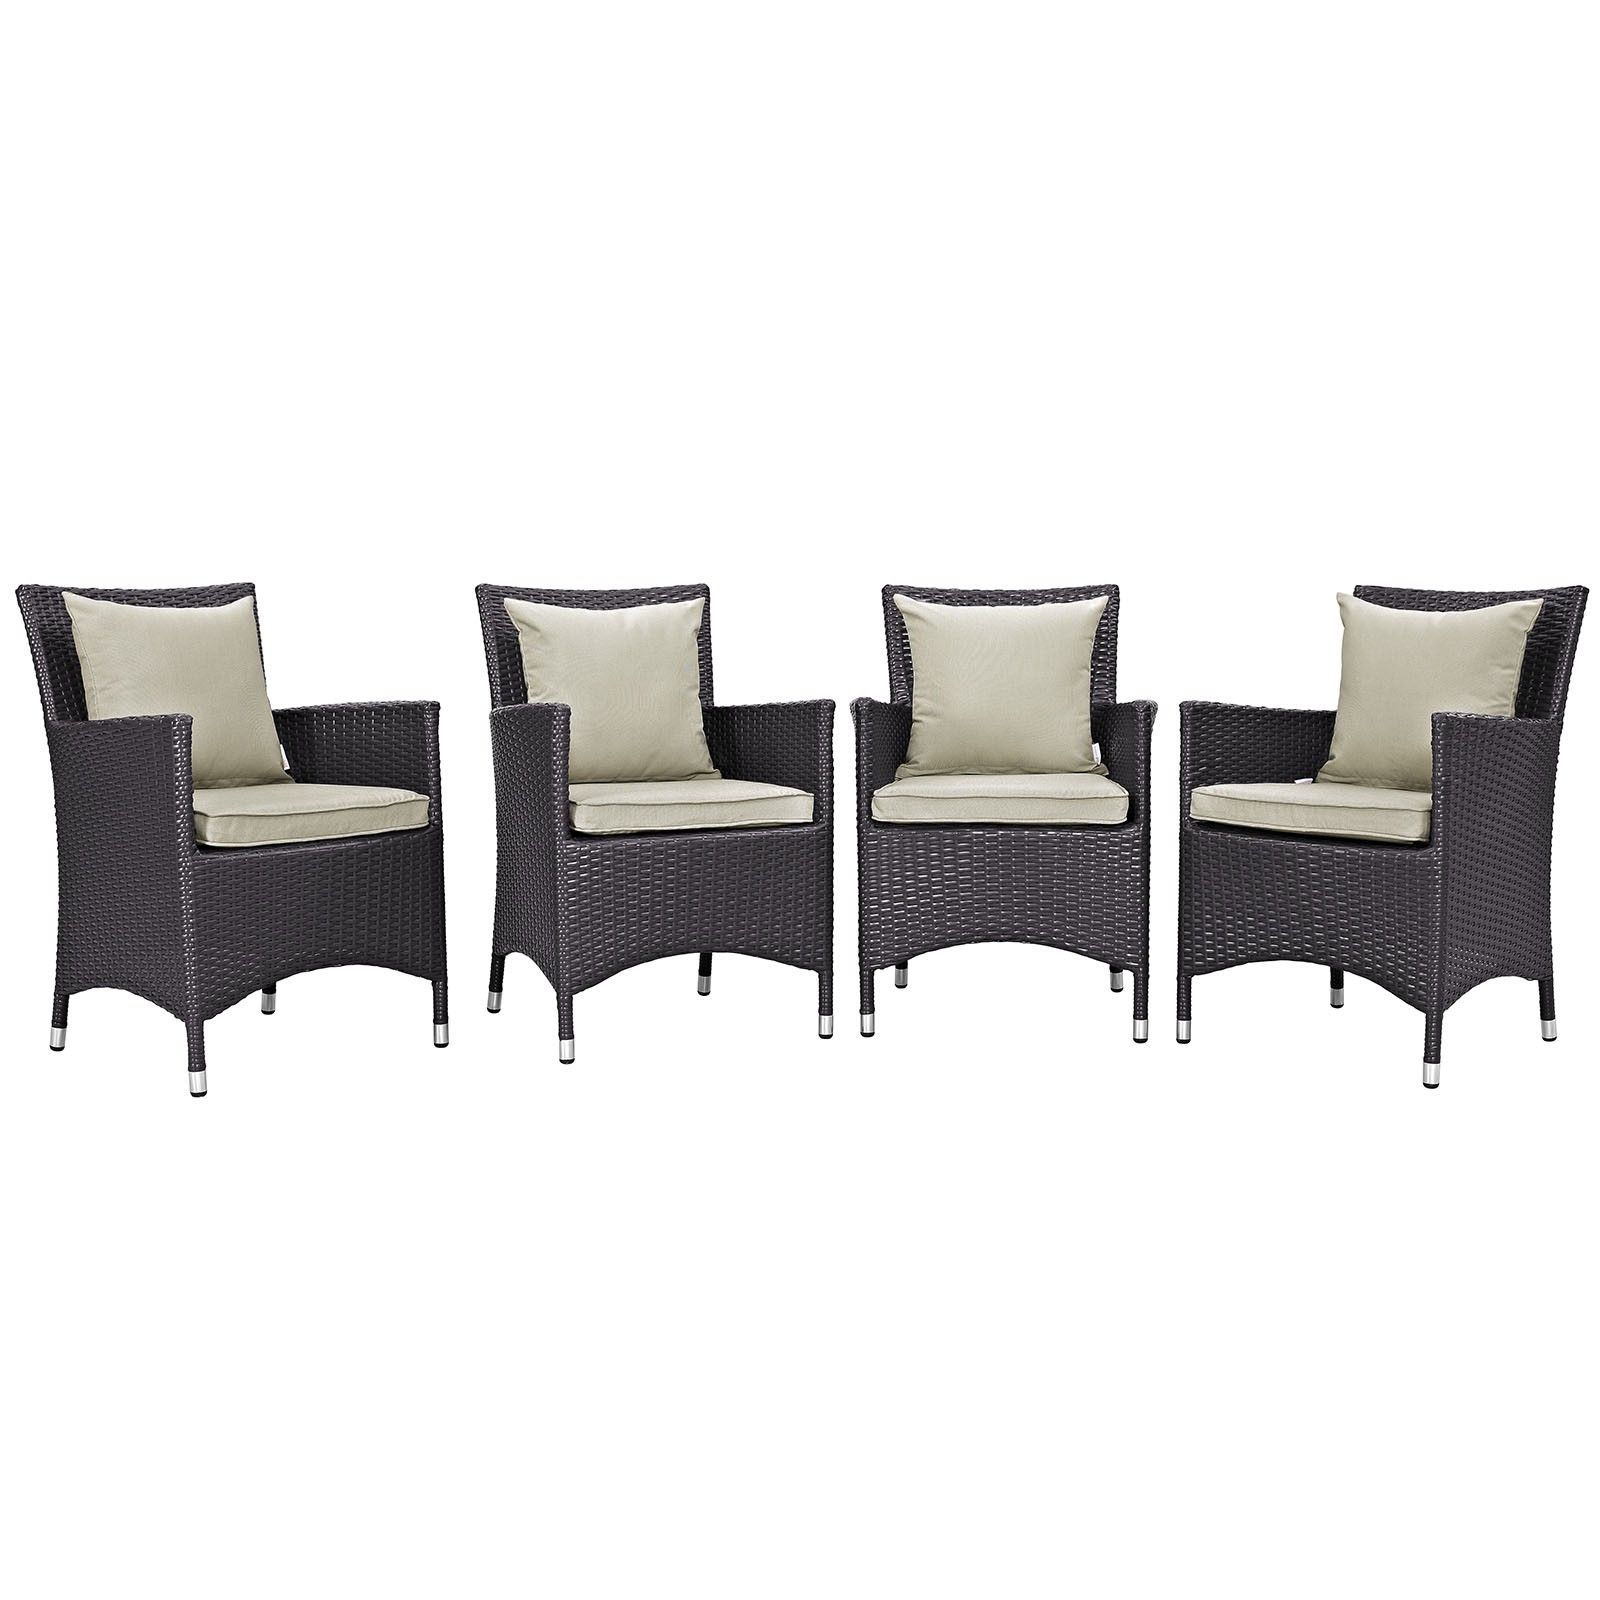 Convene 4 Piece Outdoor Patio Dining Set